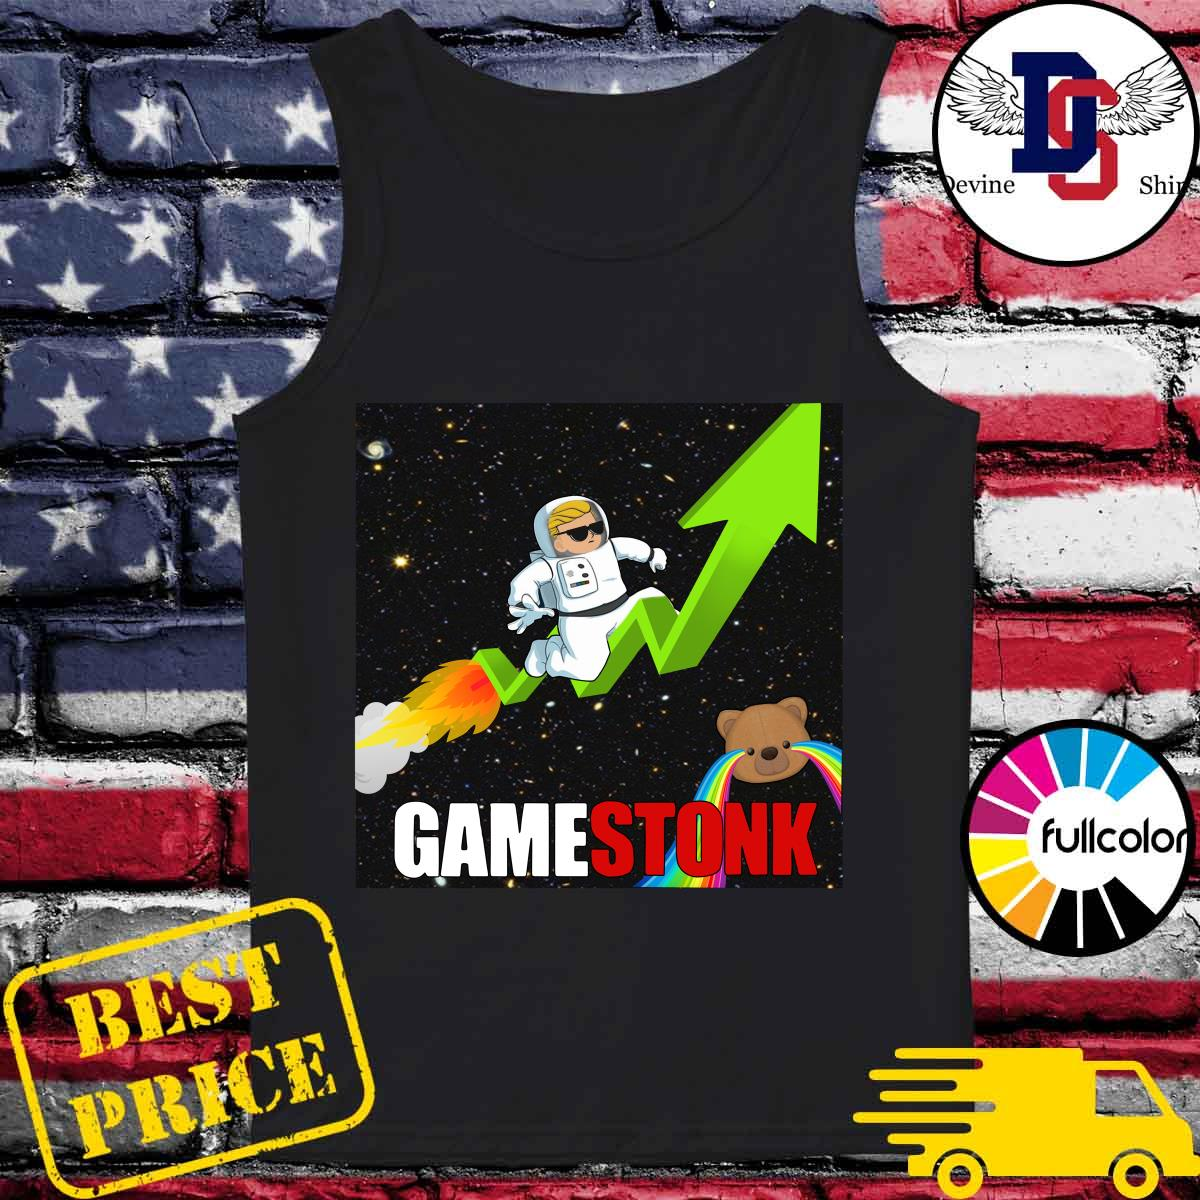 Official Logo #Gamestonk2021 – Gamestonk Stock Market – Can't Stop Game Stonk GME T-Shirt Tank-top